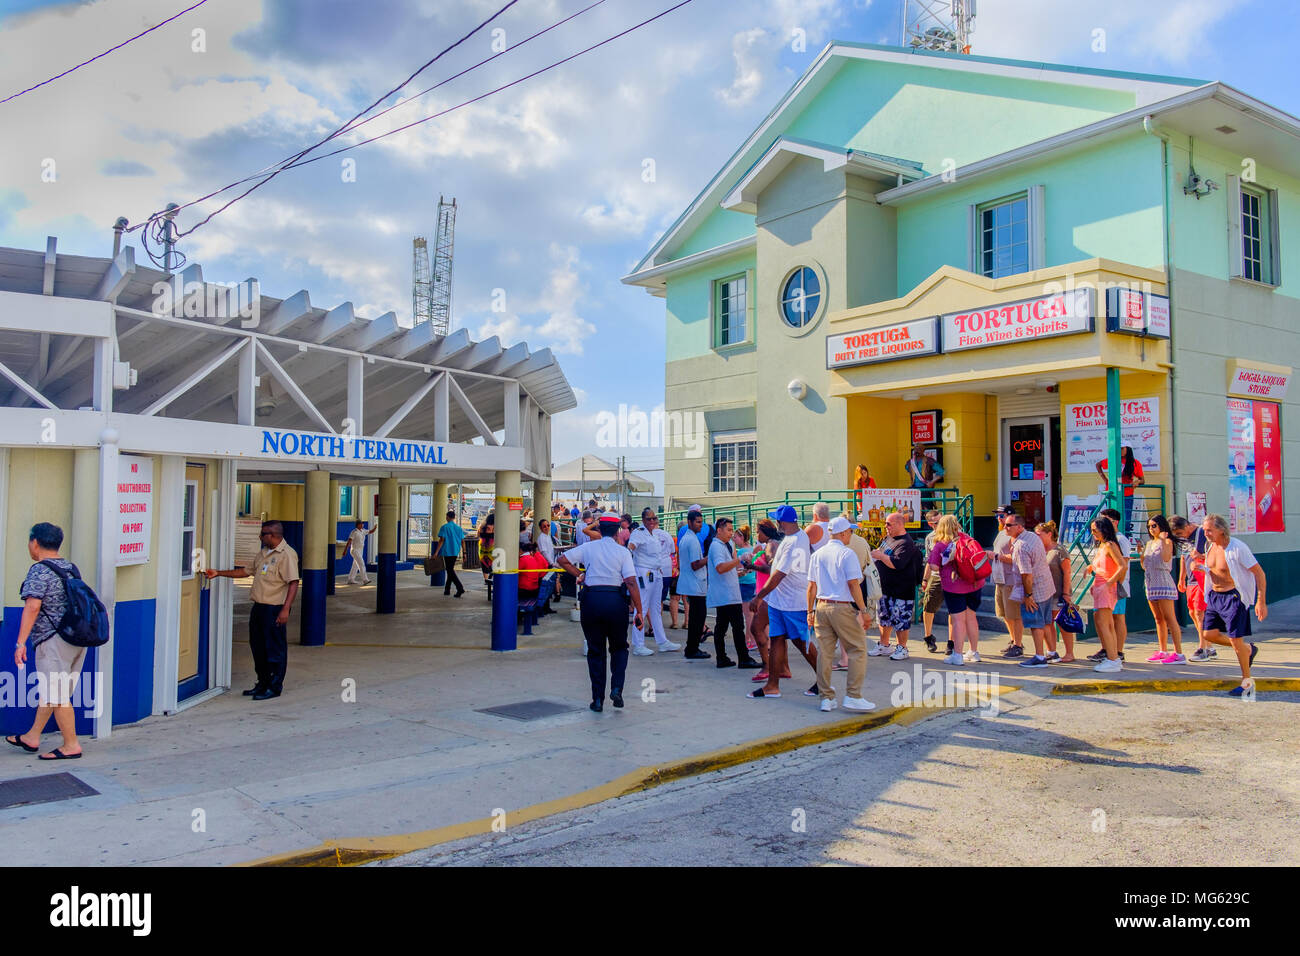 George Town, Grand Cayman, Cayman Islands, Feb 2018, tourists by the port North terminal queuing to re-embark on their cruise ship - Stock Image